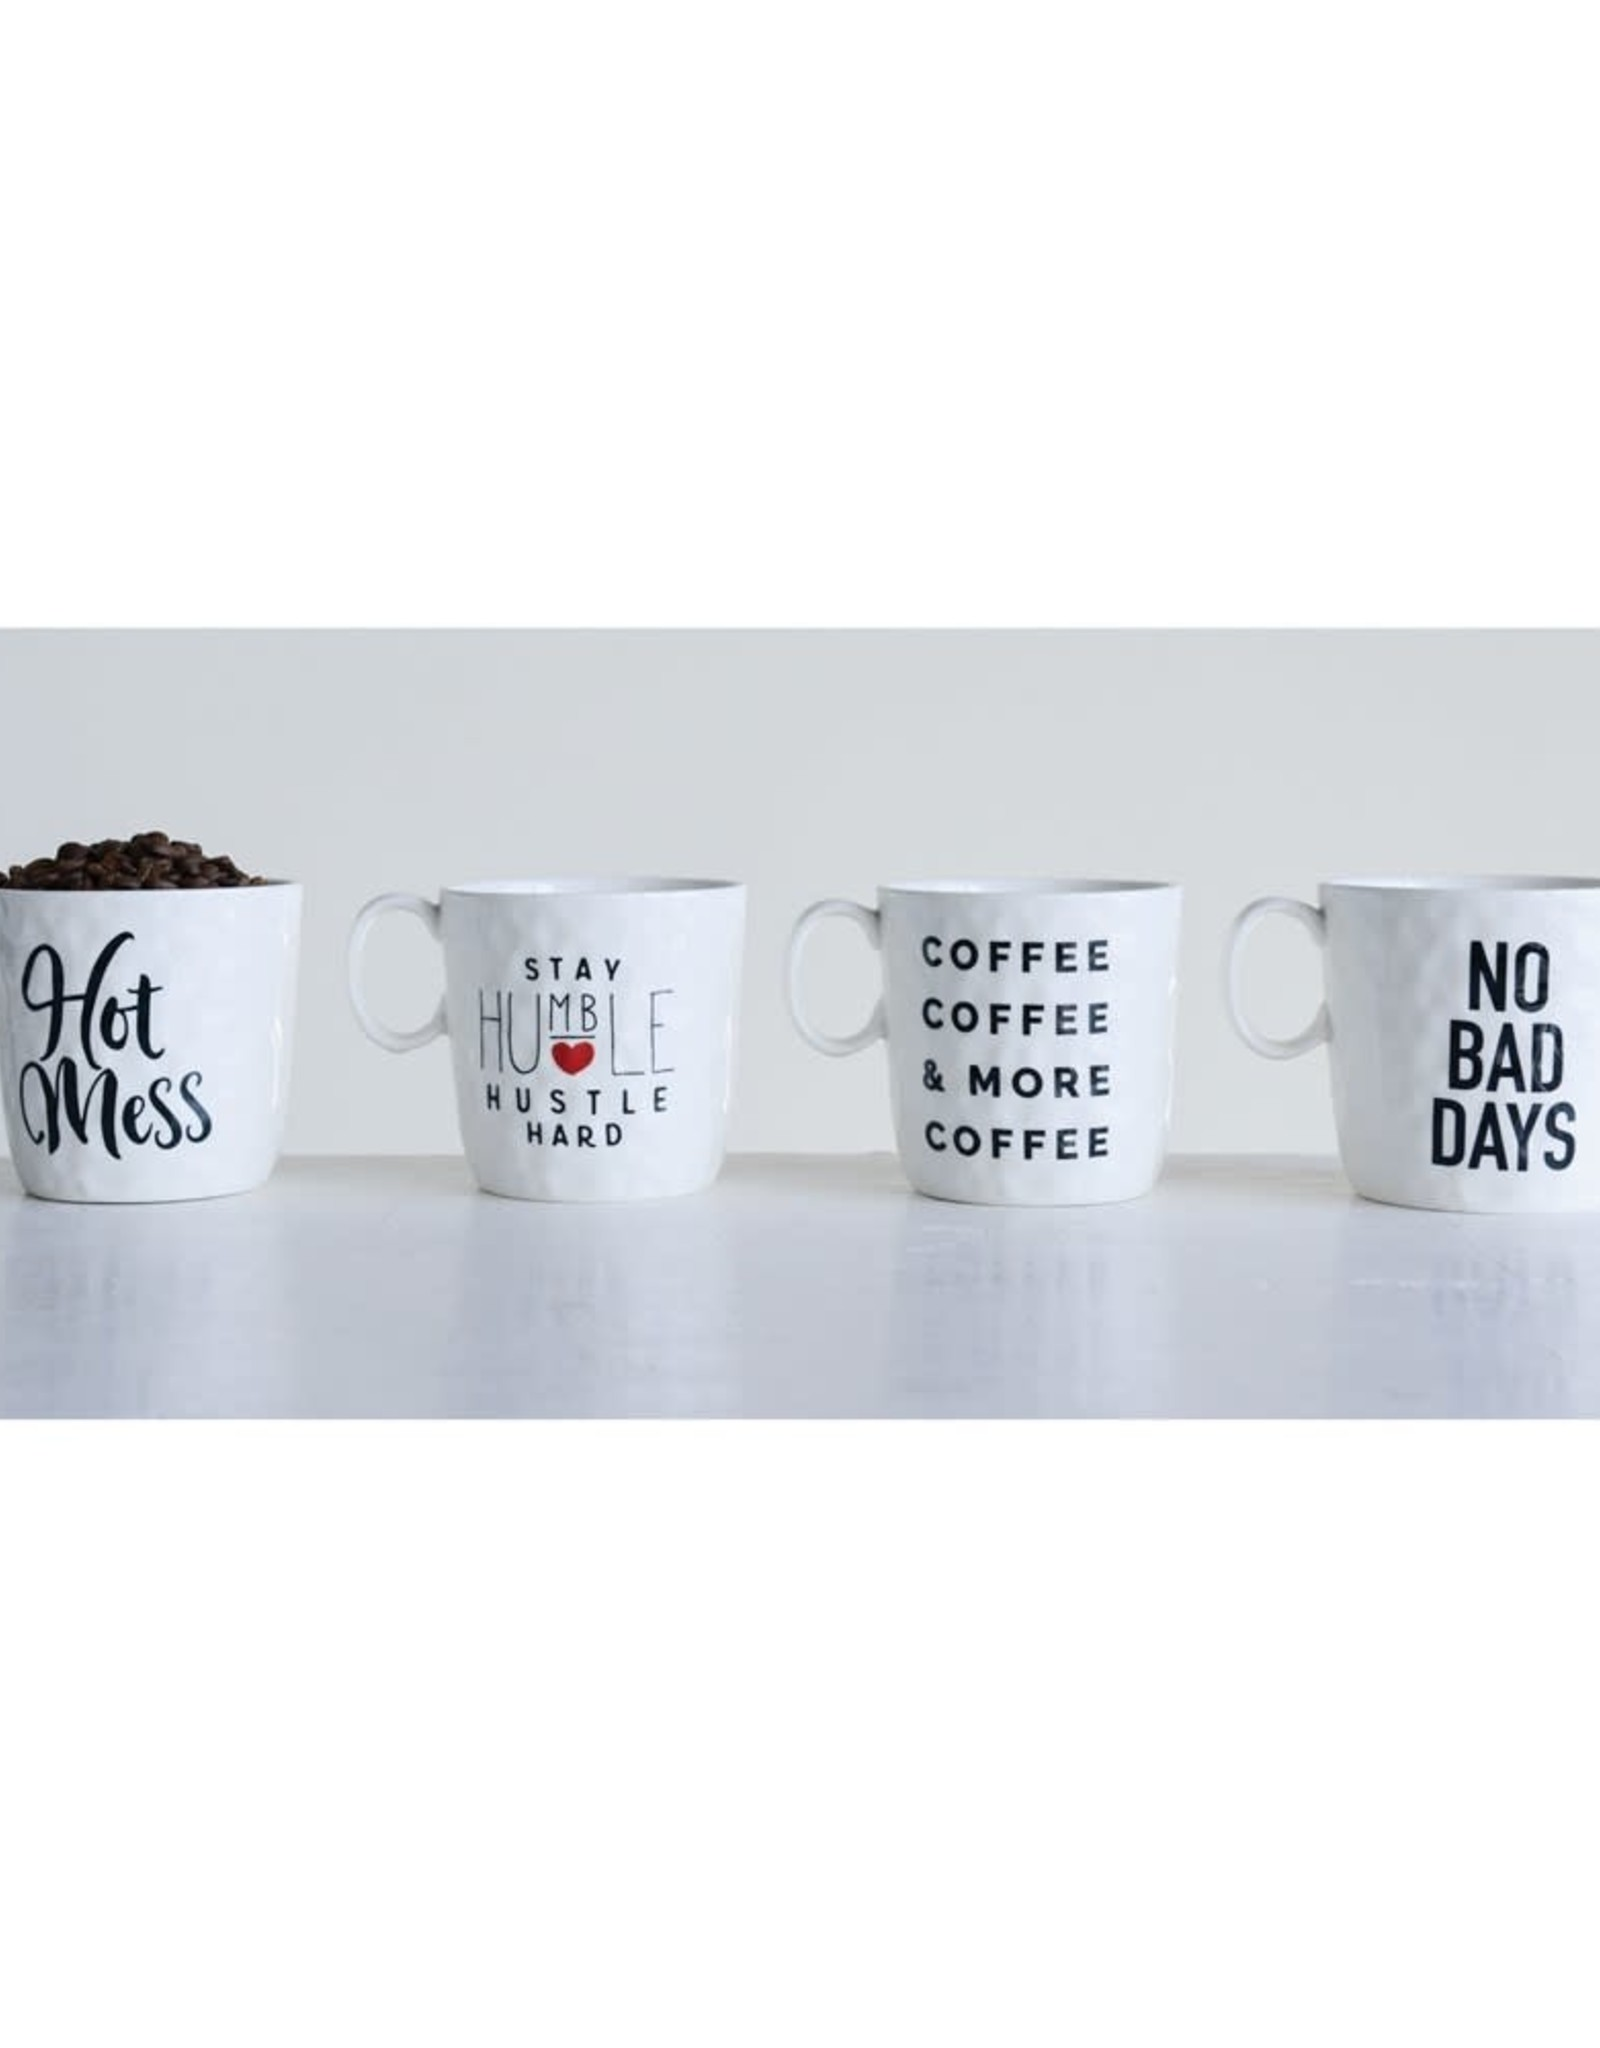 Wink Coffee Mug with Saying